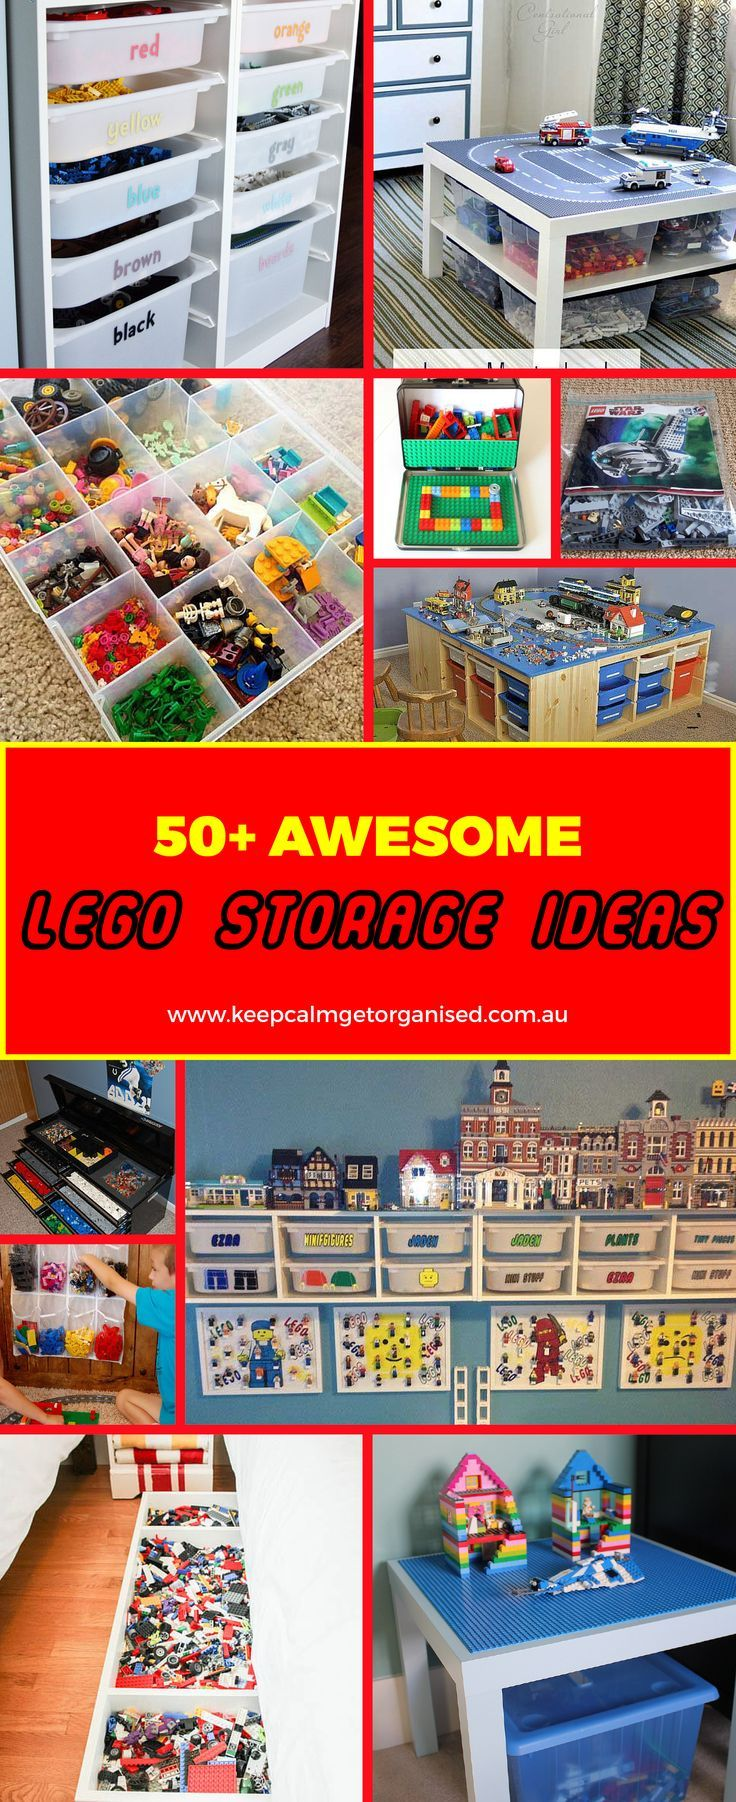 Here's a major list of inspiration for LEGO storage ideas. bricks can be sorted by color or size, repurposed tool boxes, under the bed storage, and tackle boxes! There so so many ways to creatively sort and store your LEGO bricks! You're bound to find a few really cool ideas here!